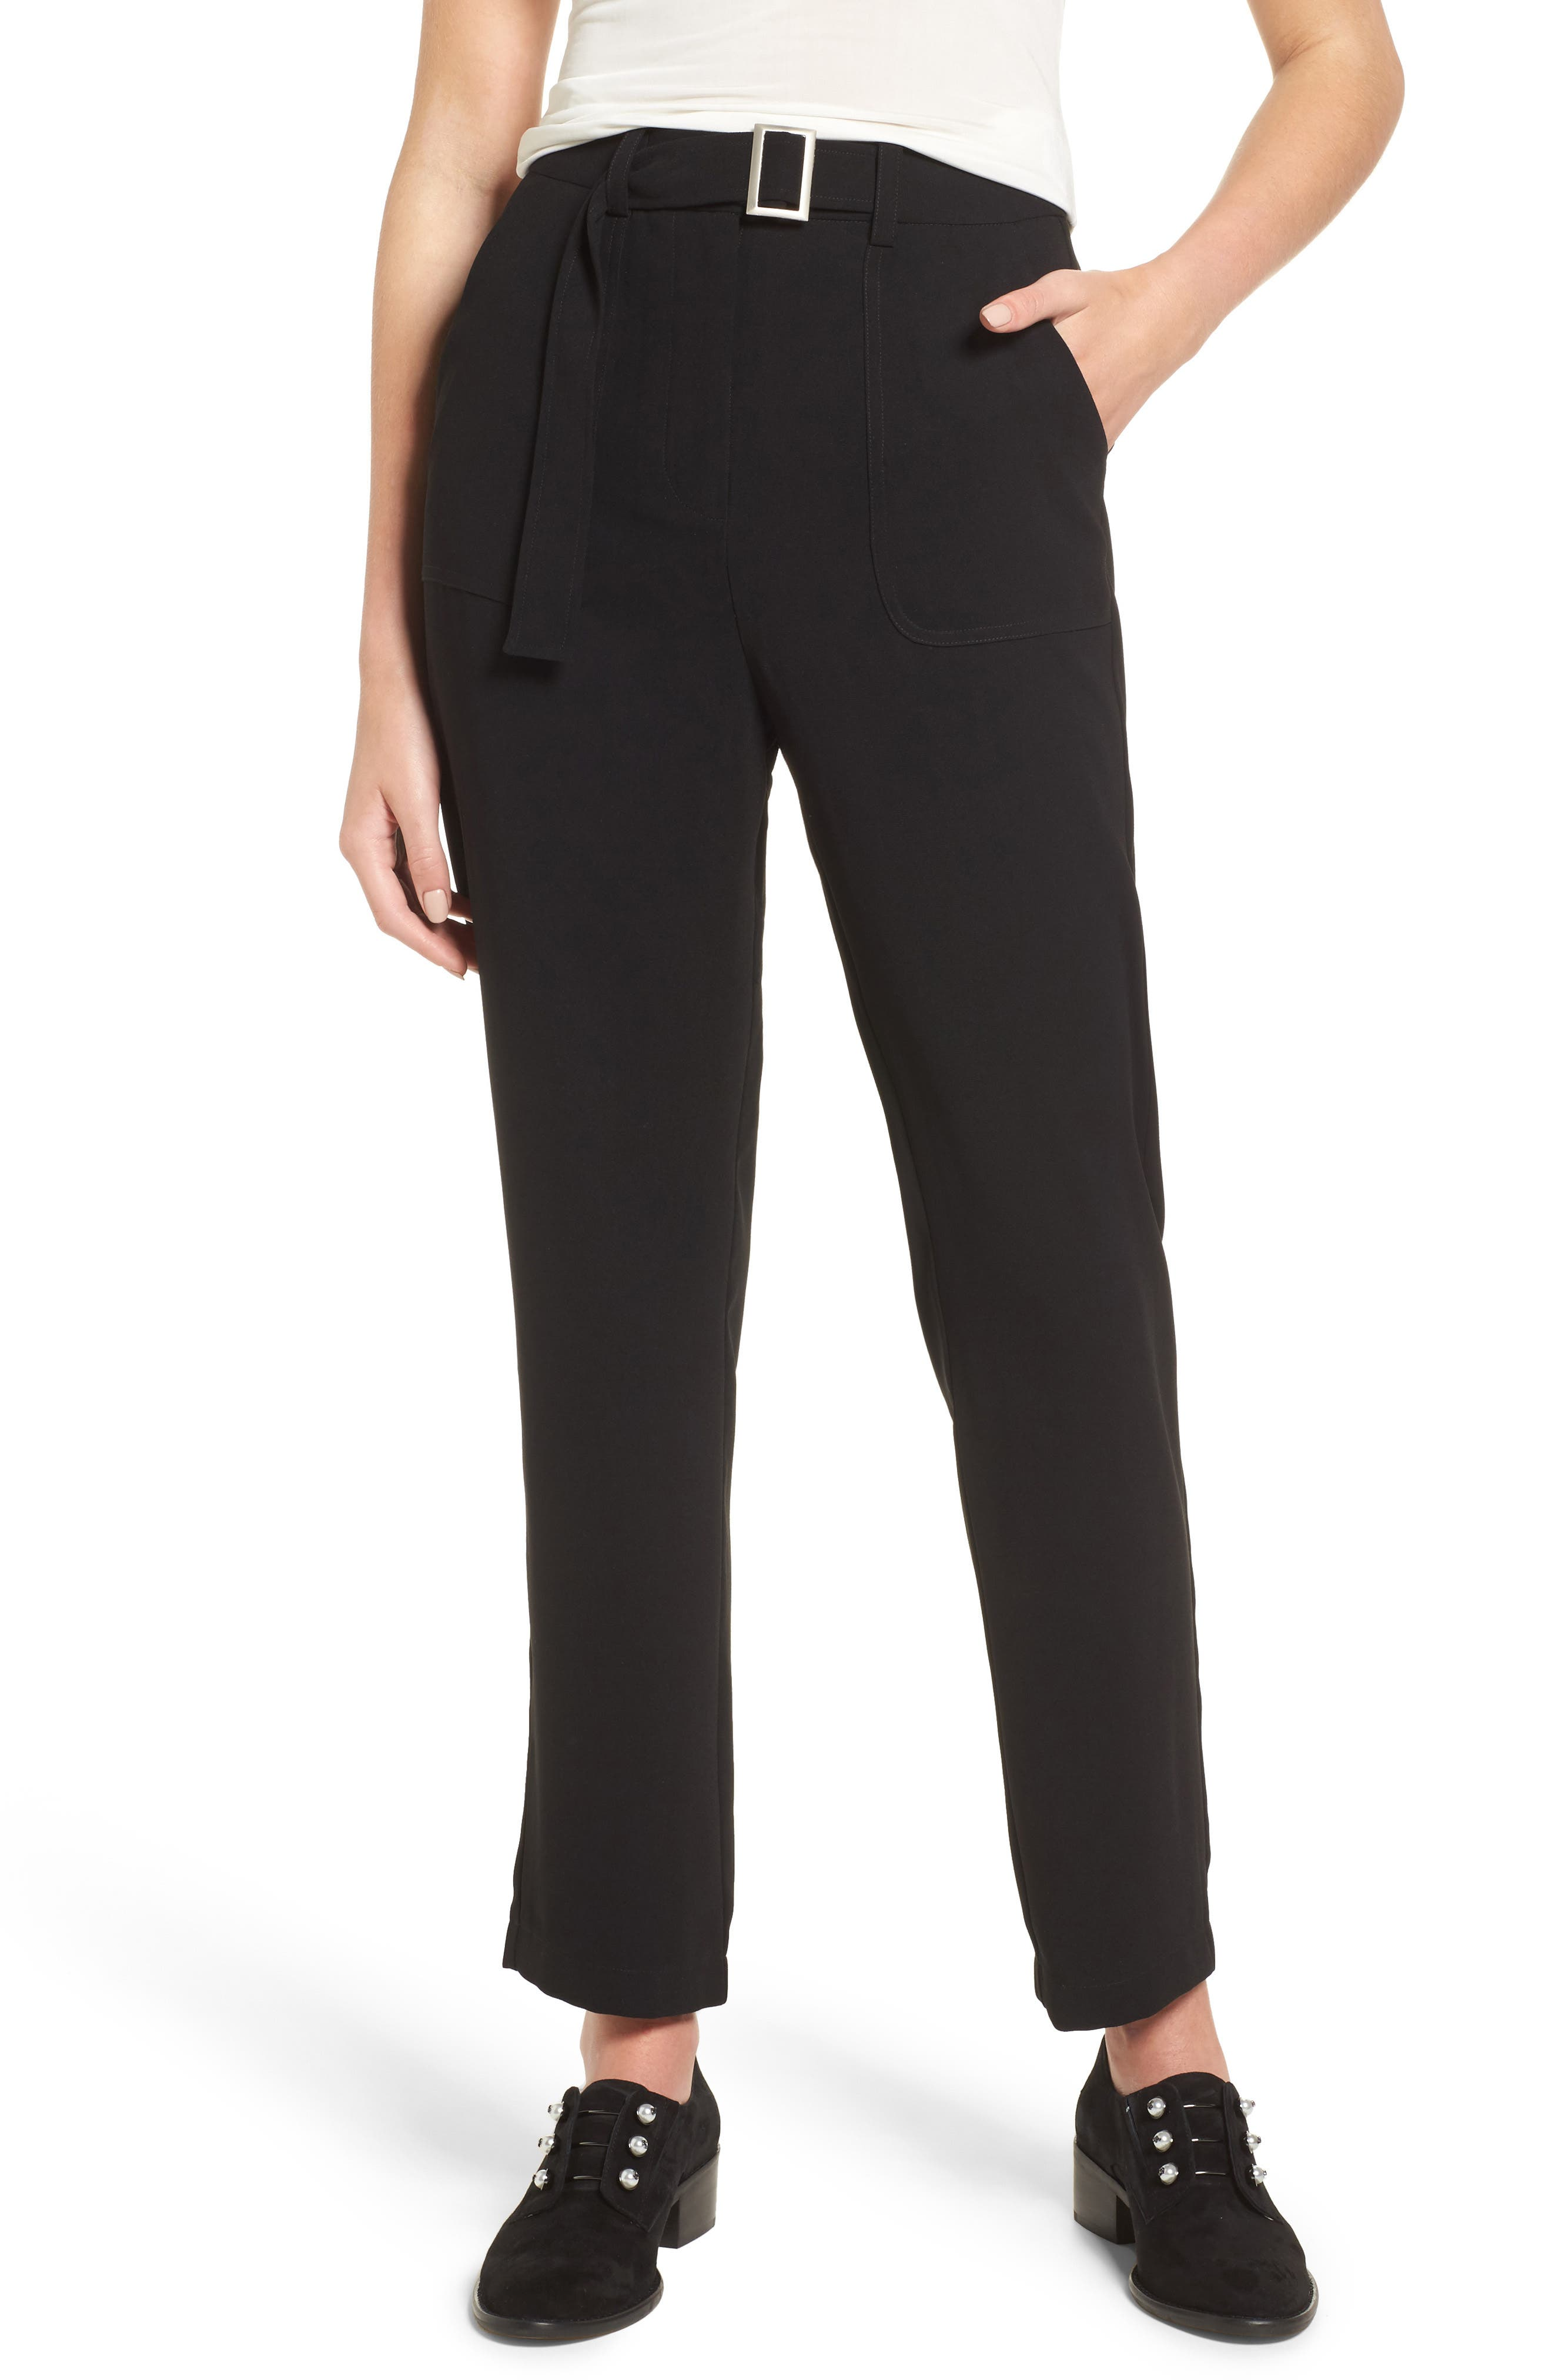 J.O.A. Belted Ankle Pants